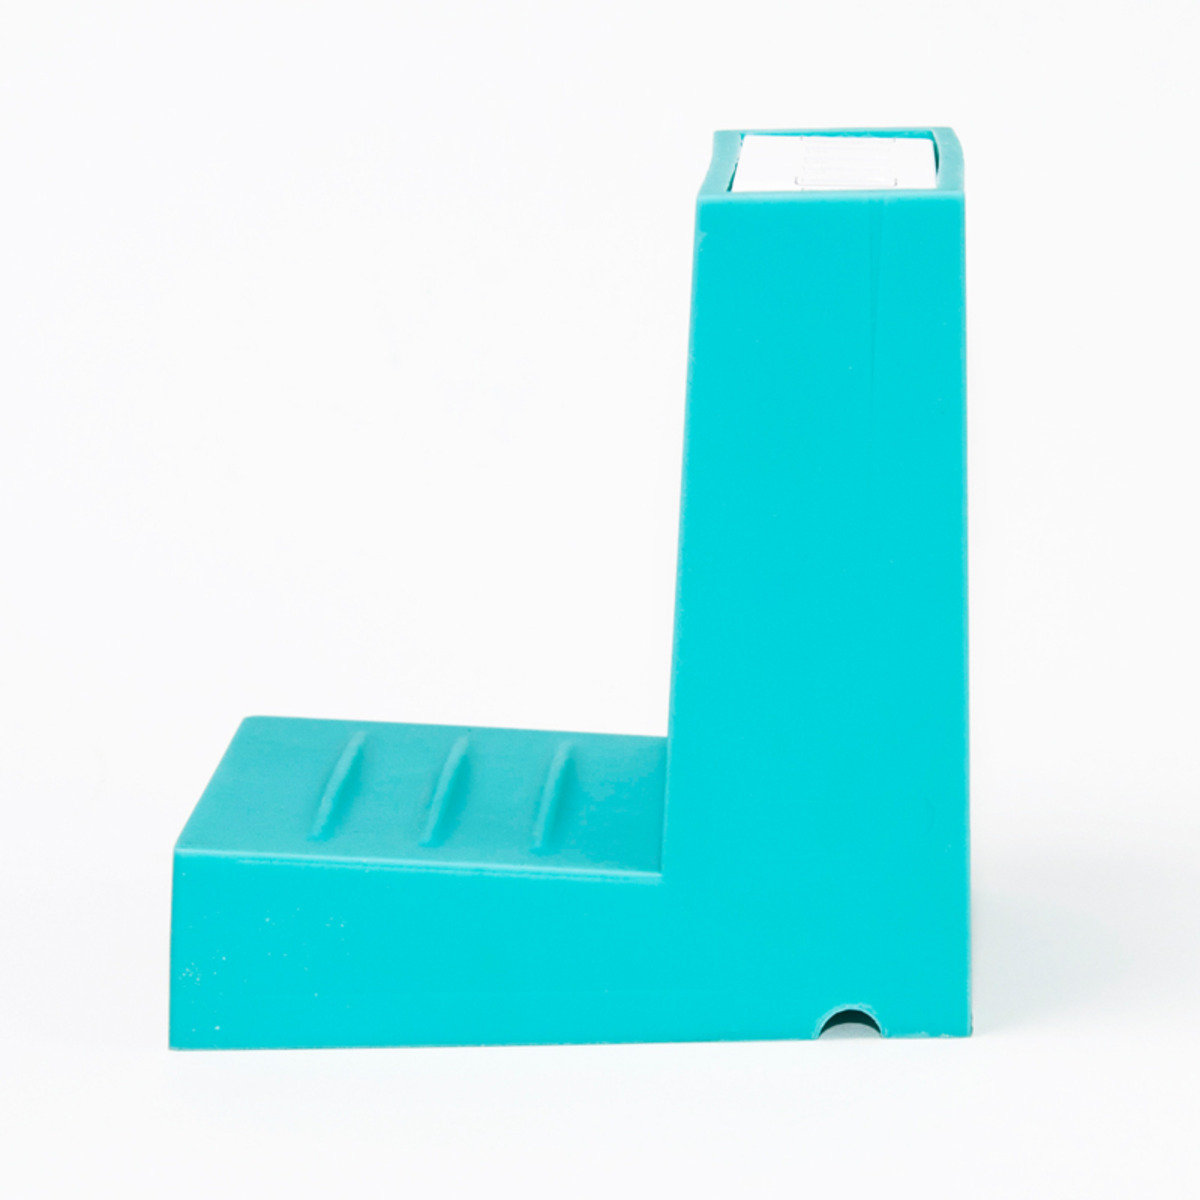 Sofa 10.6 5USB Bookend charging station (Blue)